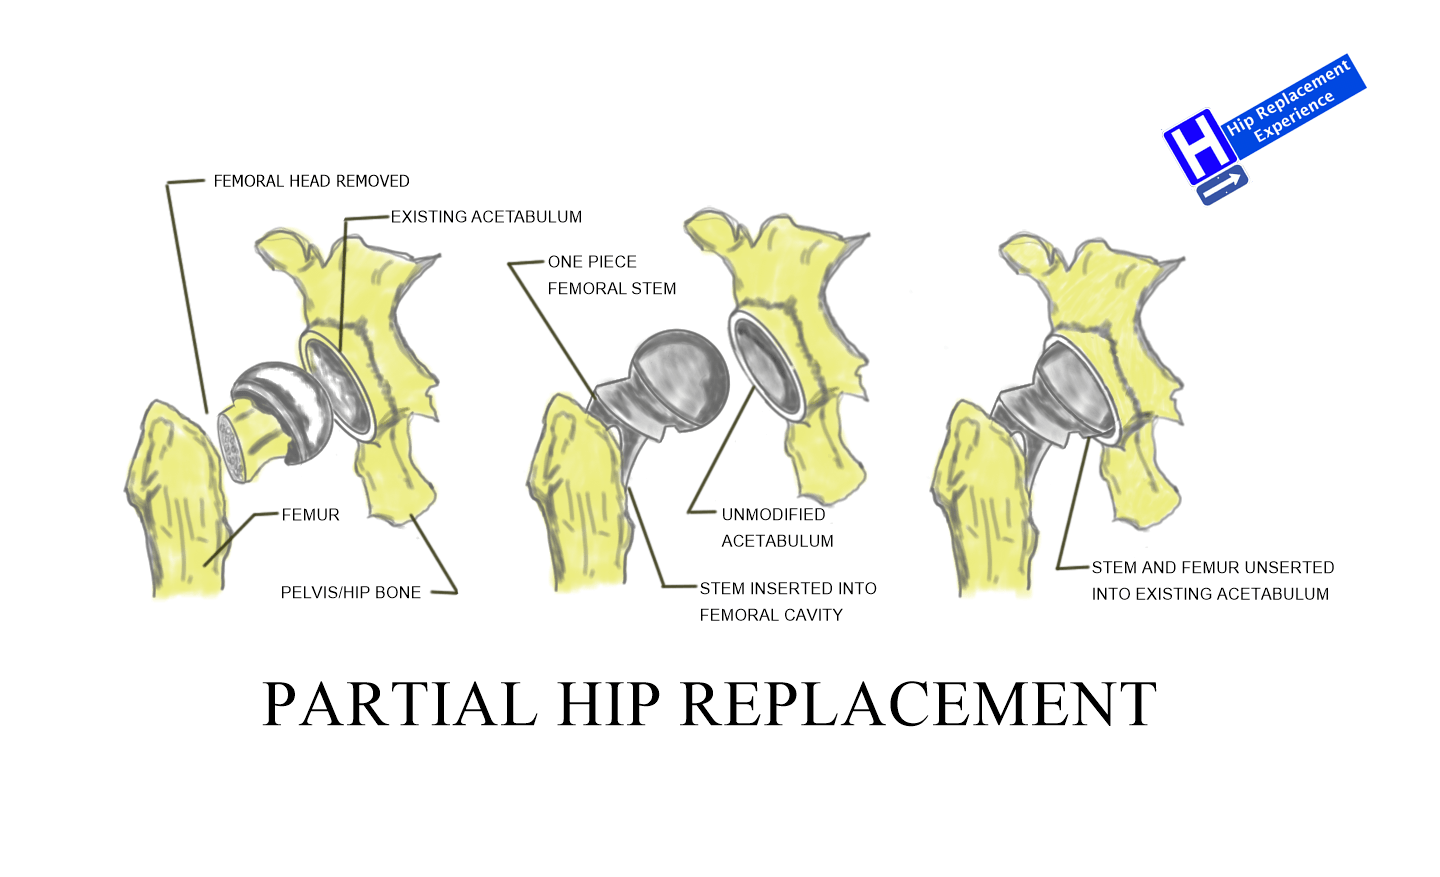 3 Hip Replacement Types - Partial Hip Replacement | Hip